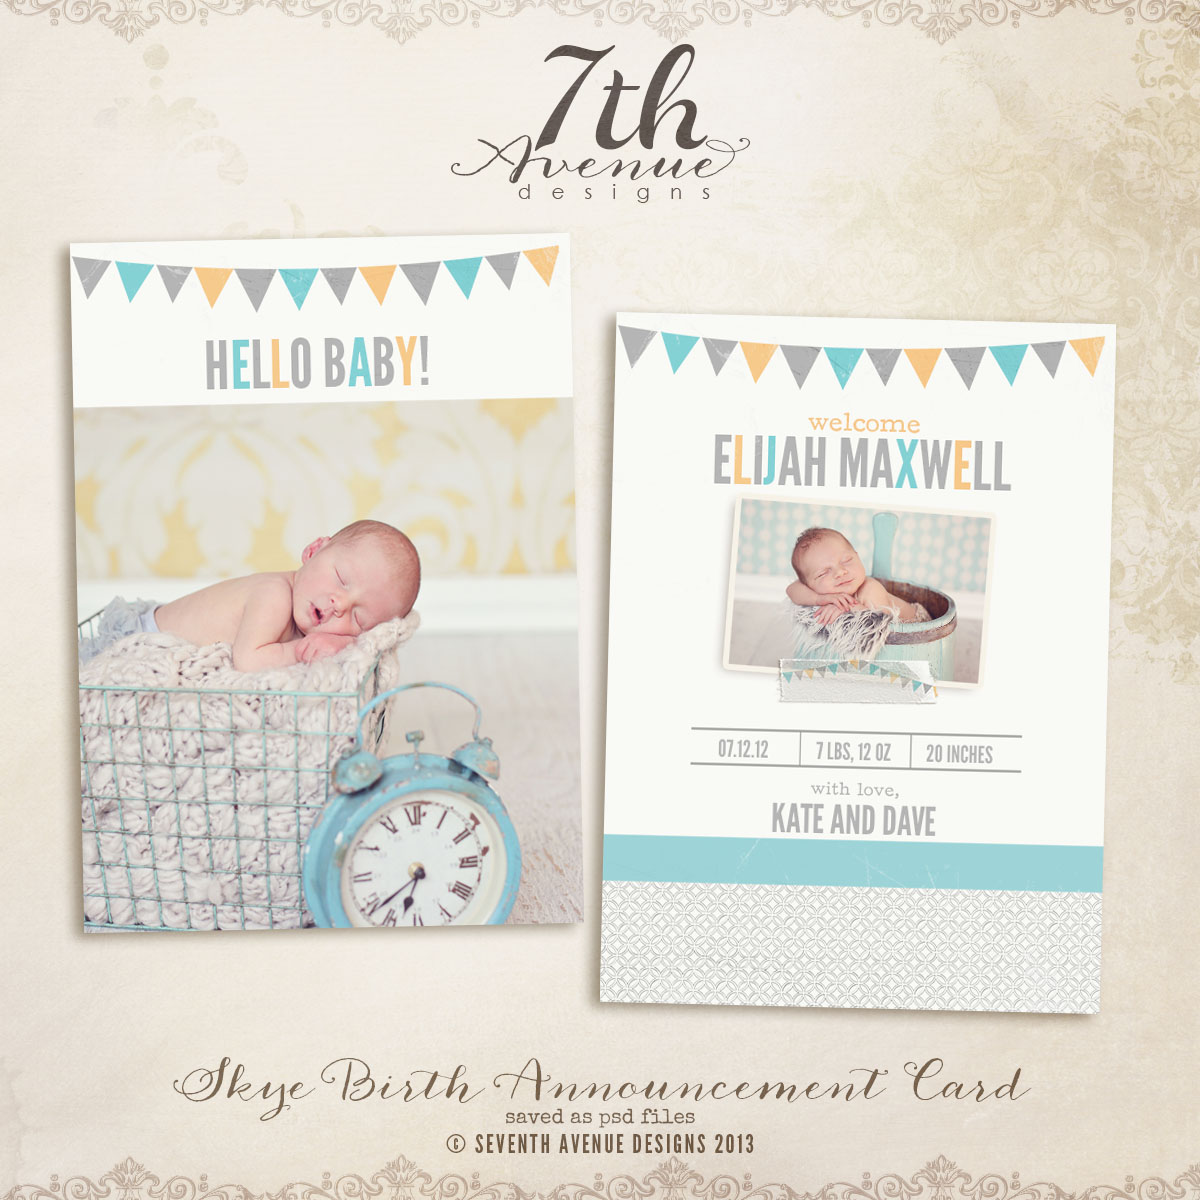 Skye Birth Announcement Card Templates